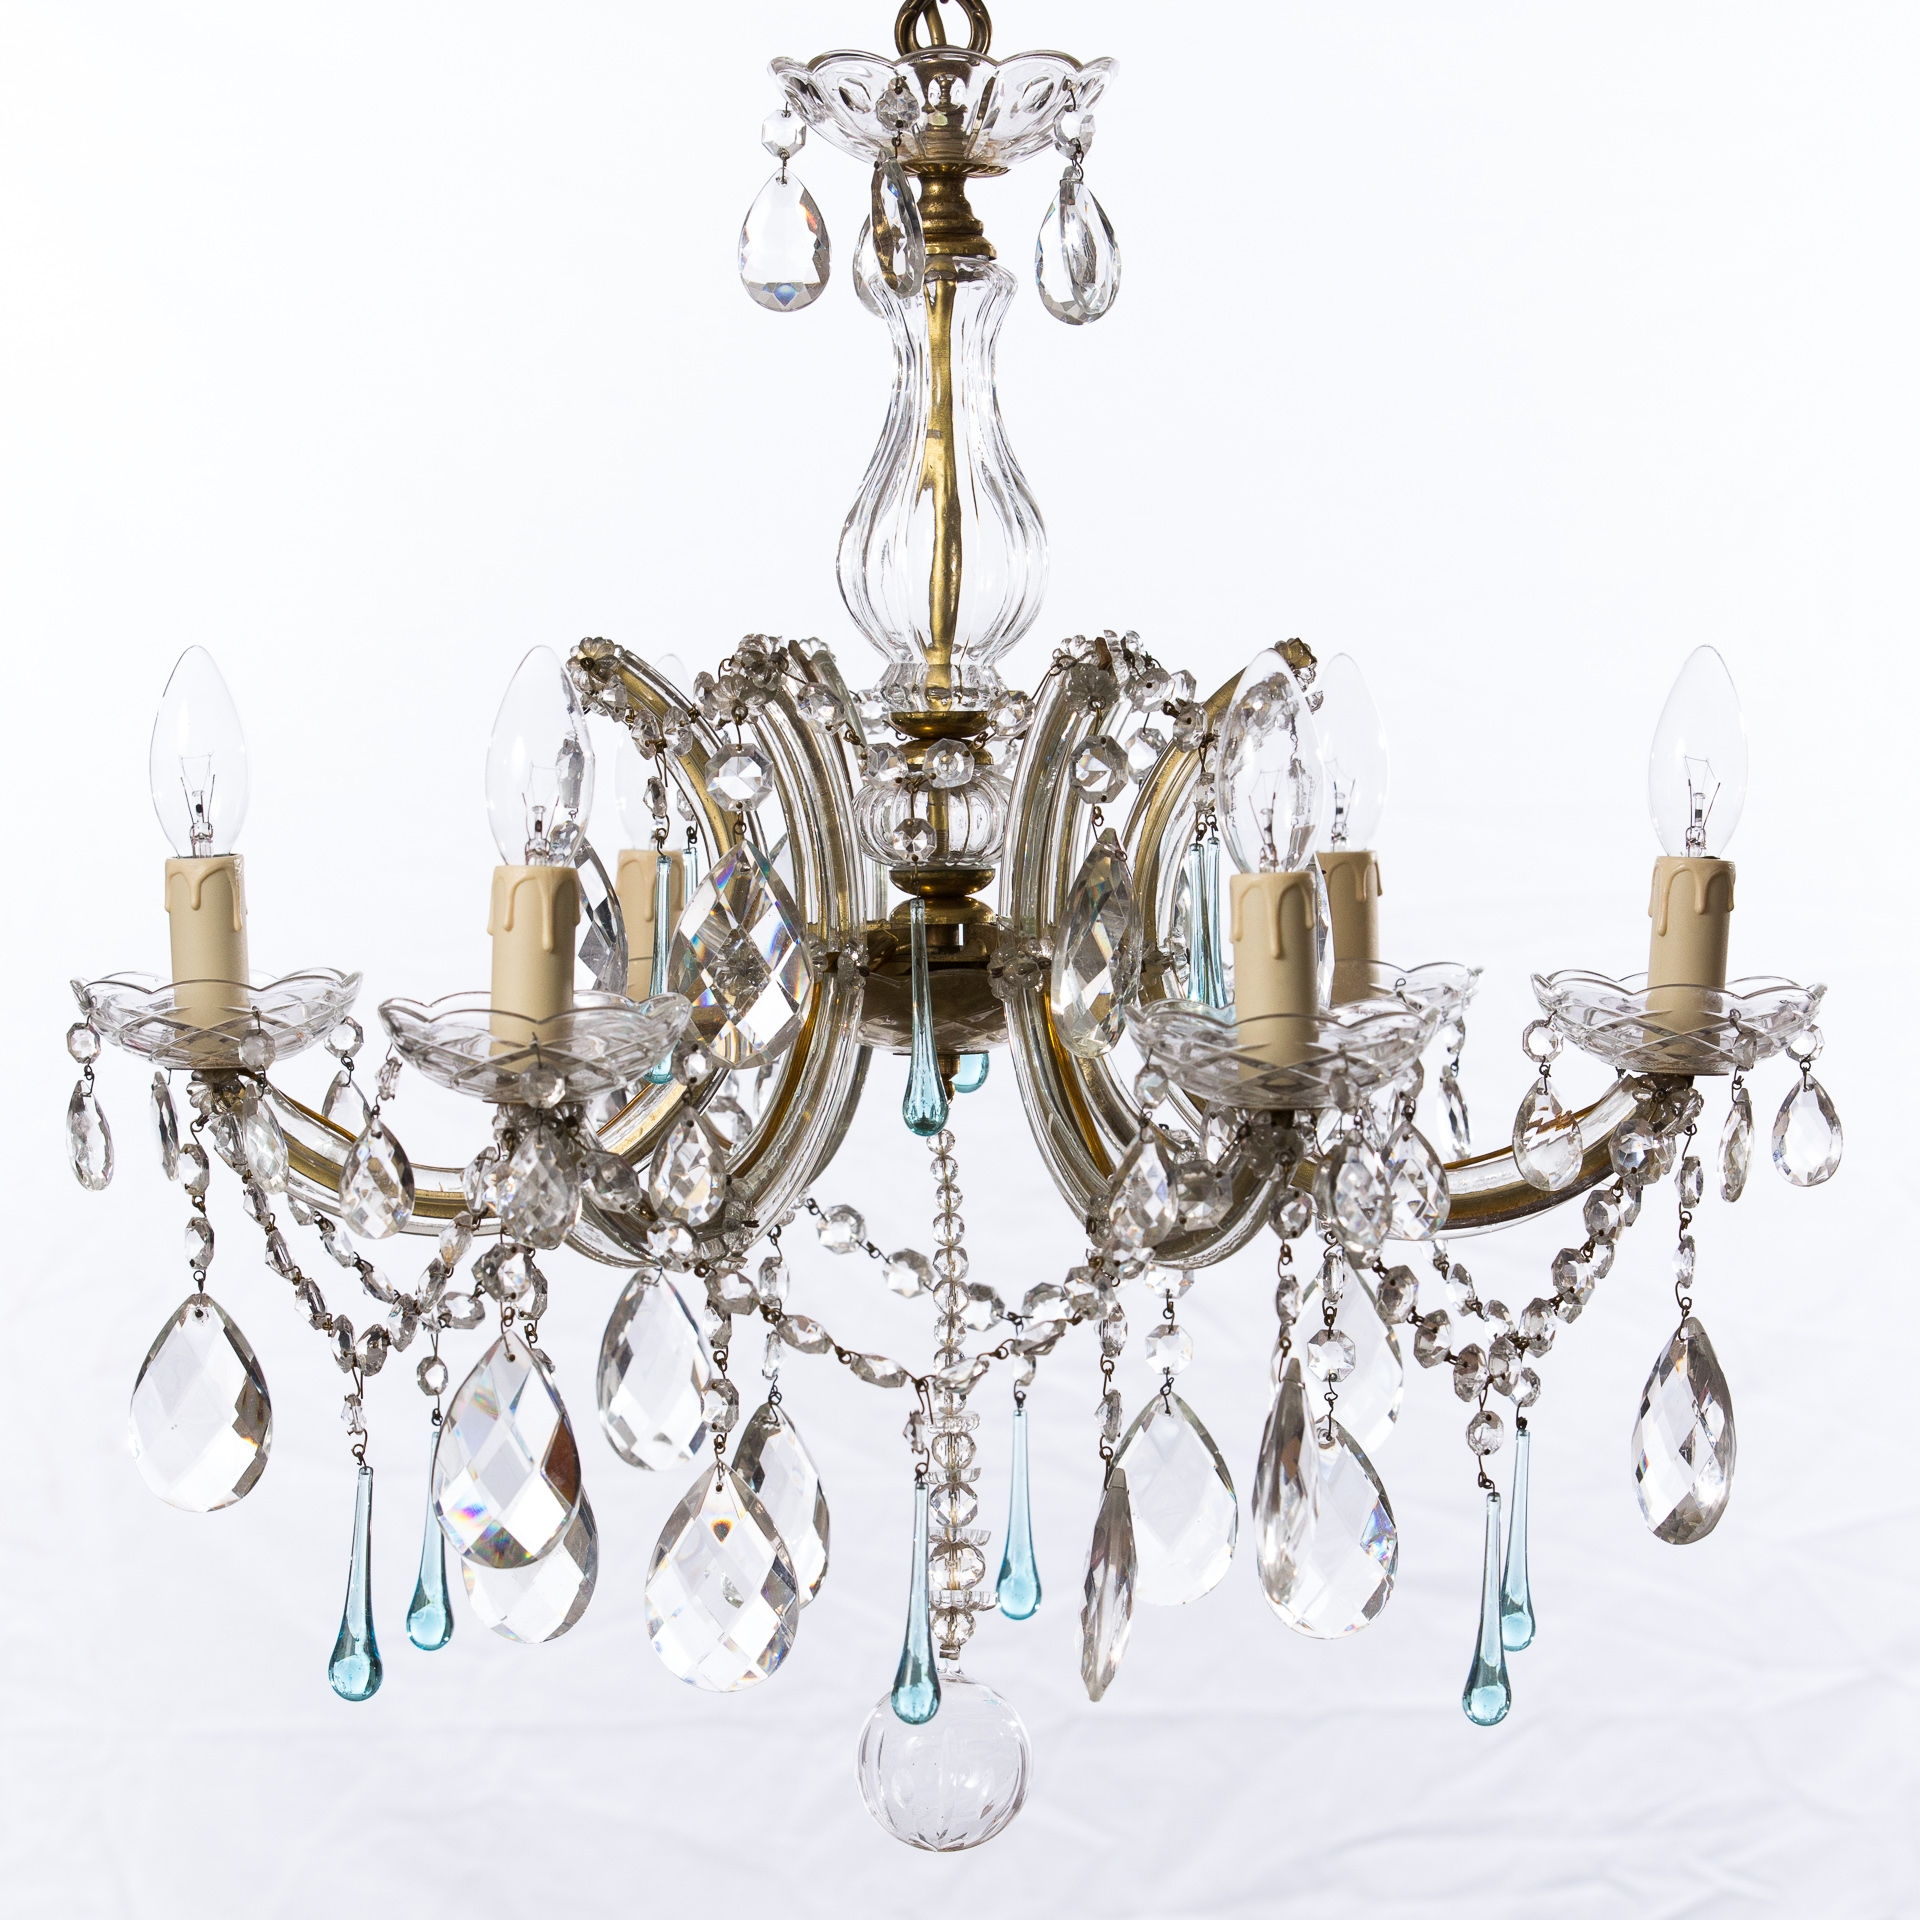 Vintage Chandeliers Design Of Your House Its Good Idea For Throughout Chandeliers Vintage (#11 of 12)